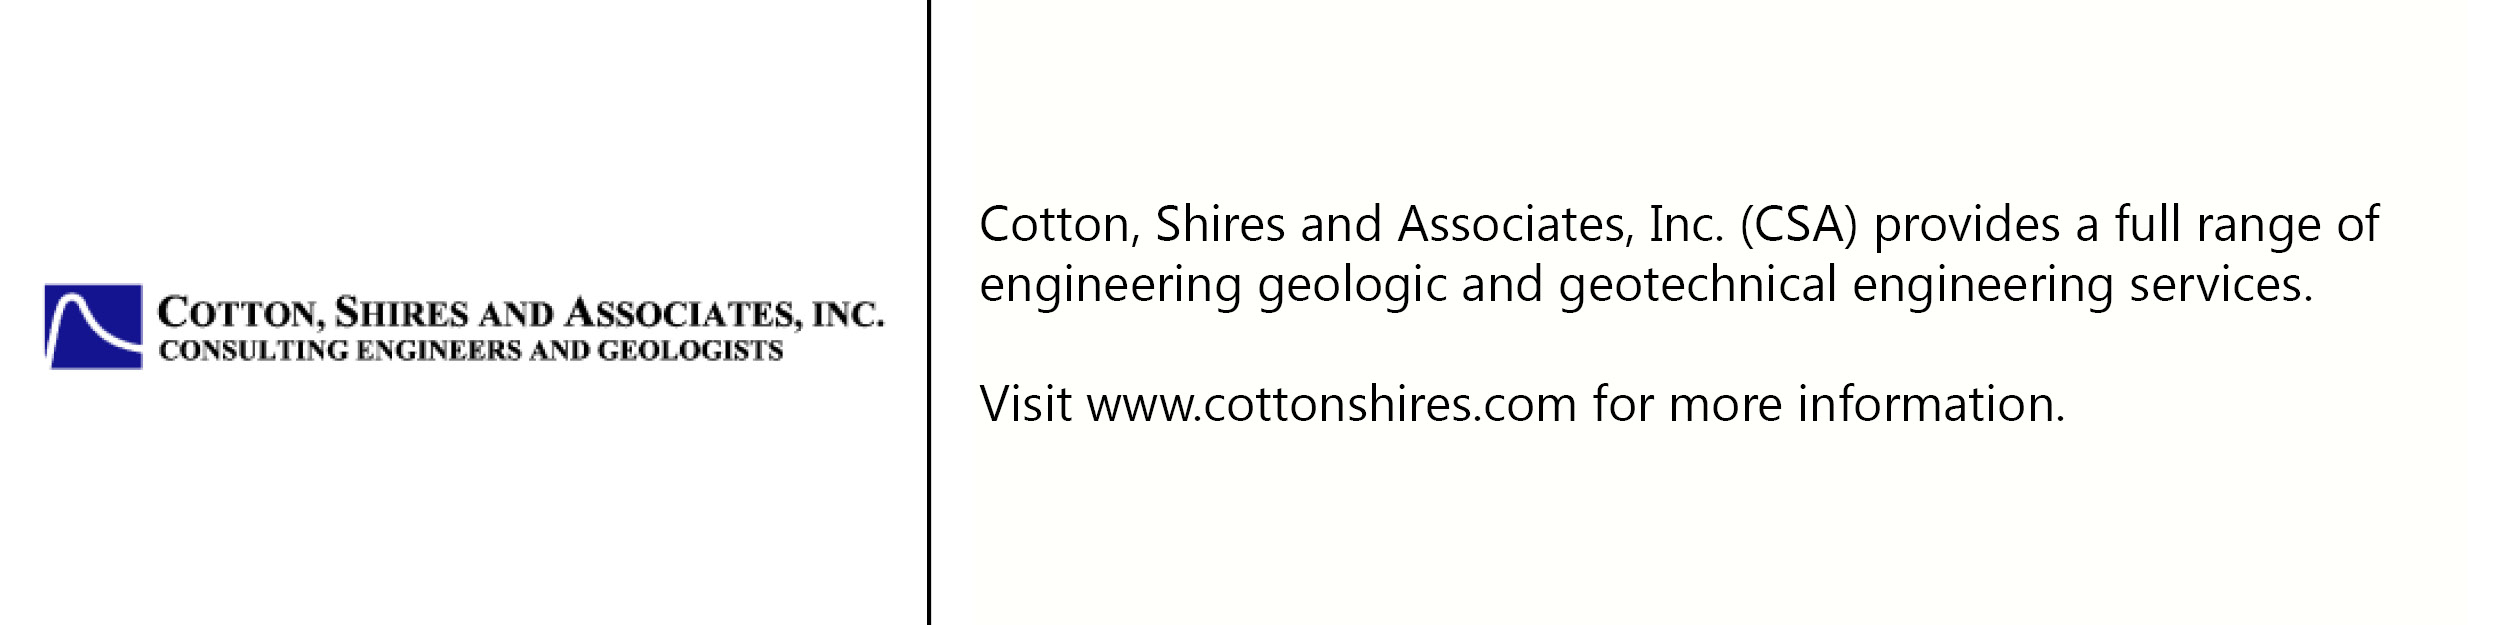 Cotton Shires and Assoc. logo with description of company